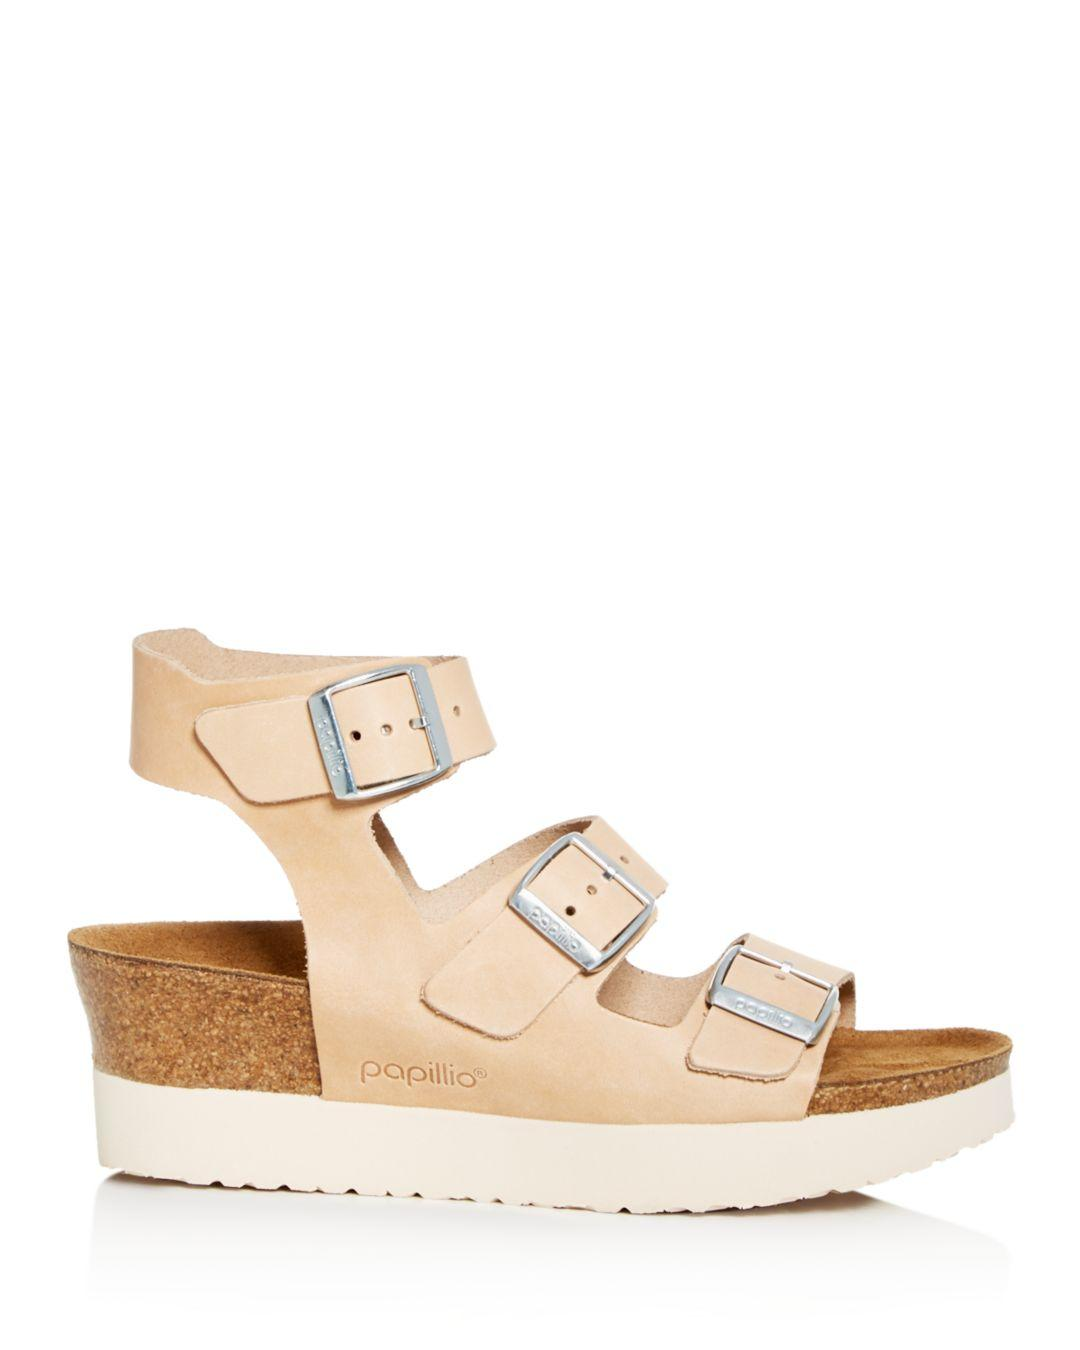 d649c6e5a141 Lyst - Birkenstock Women s Papillio By Linnea Platform Wedge Sandals in  Natural